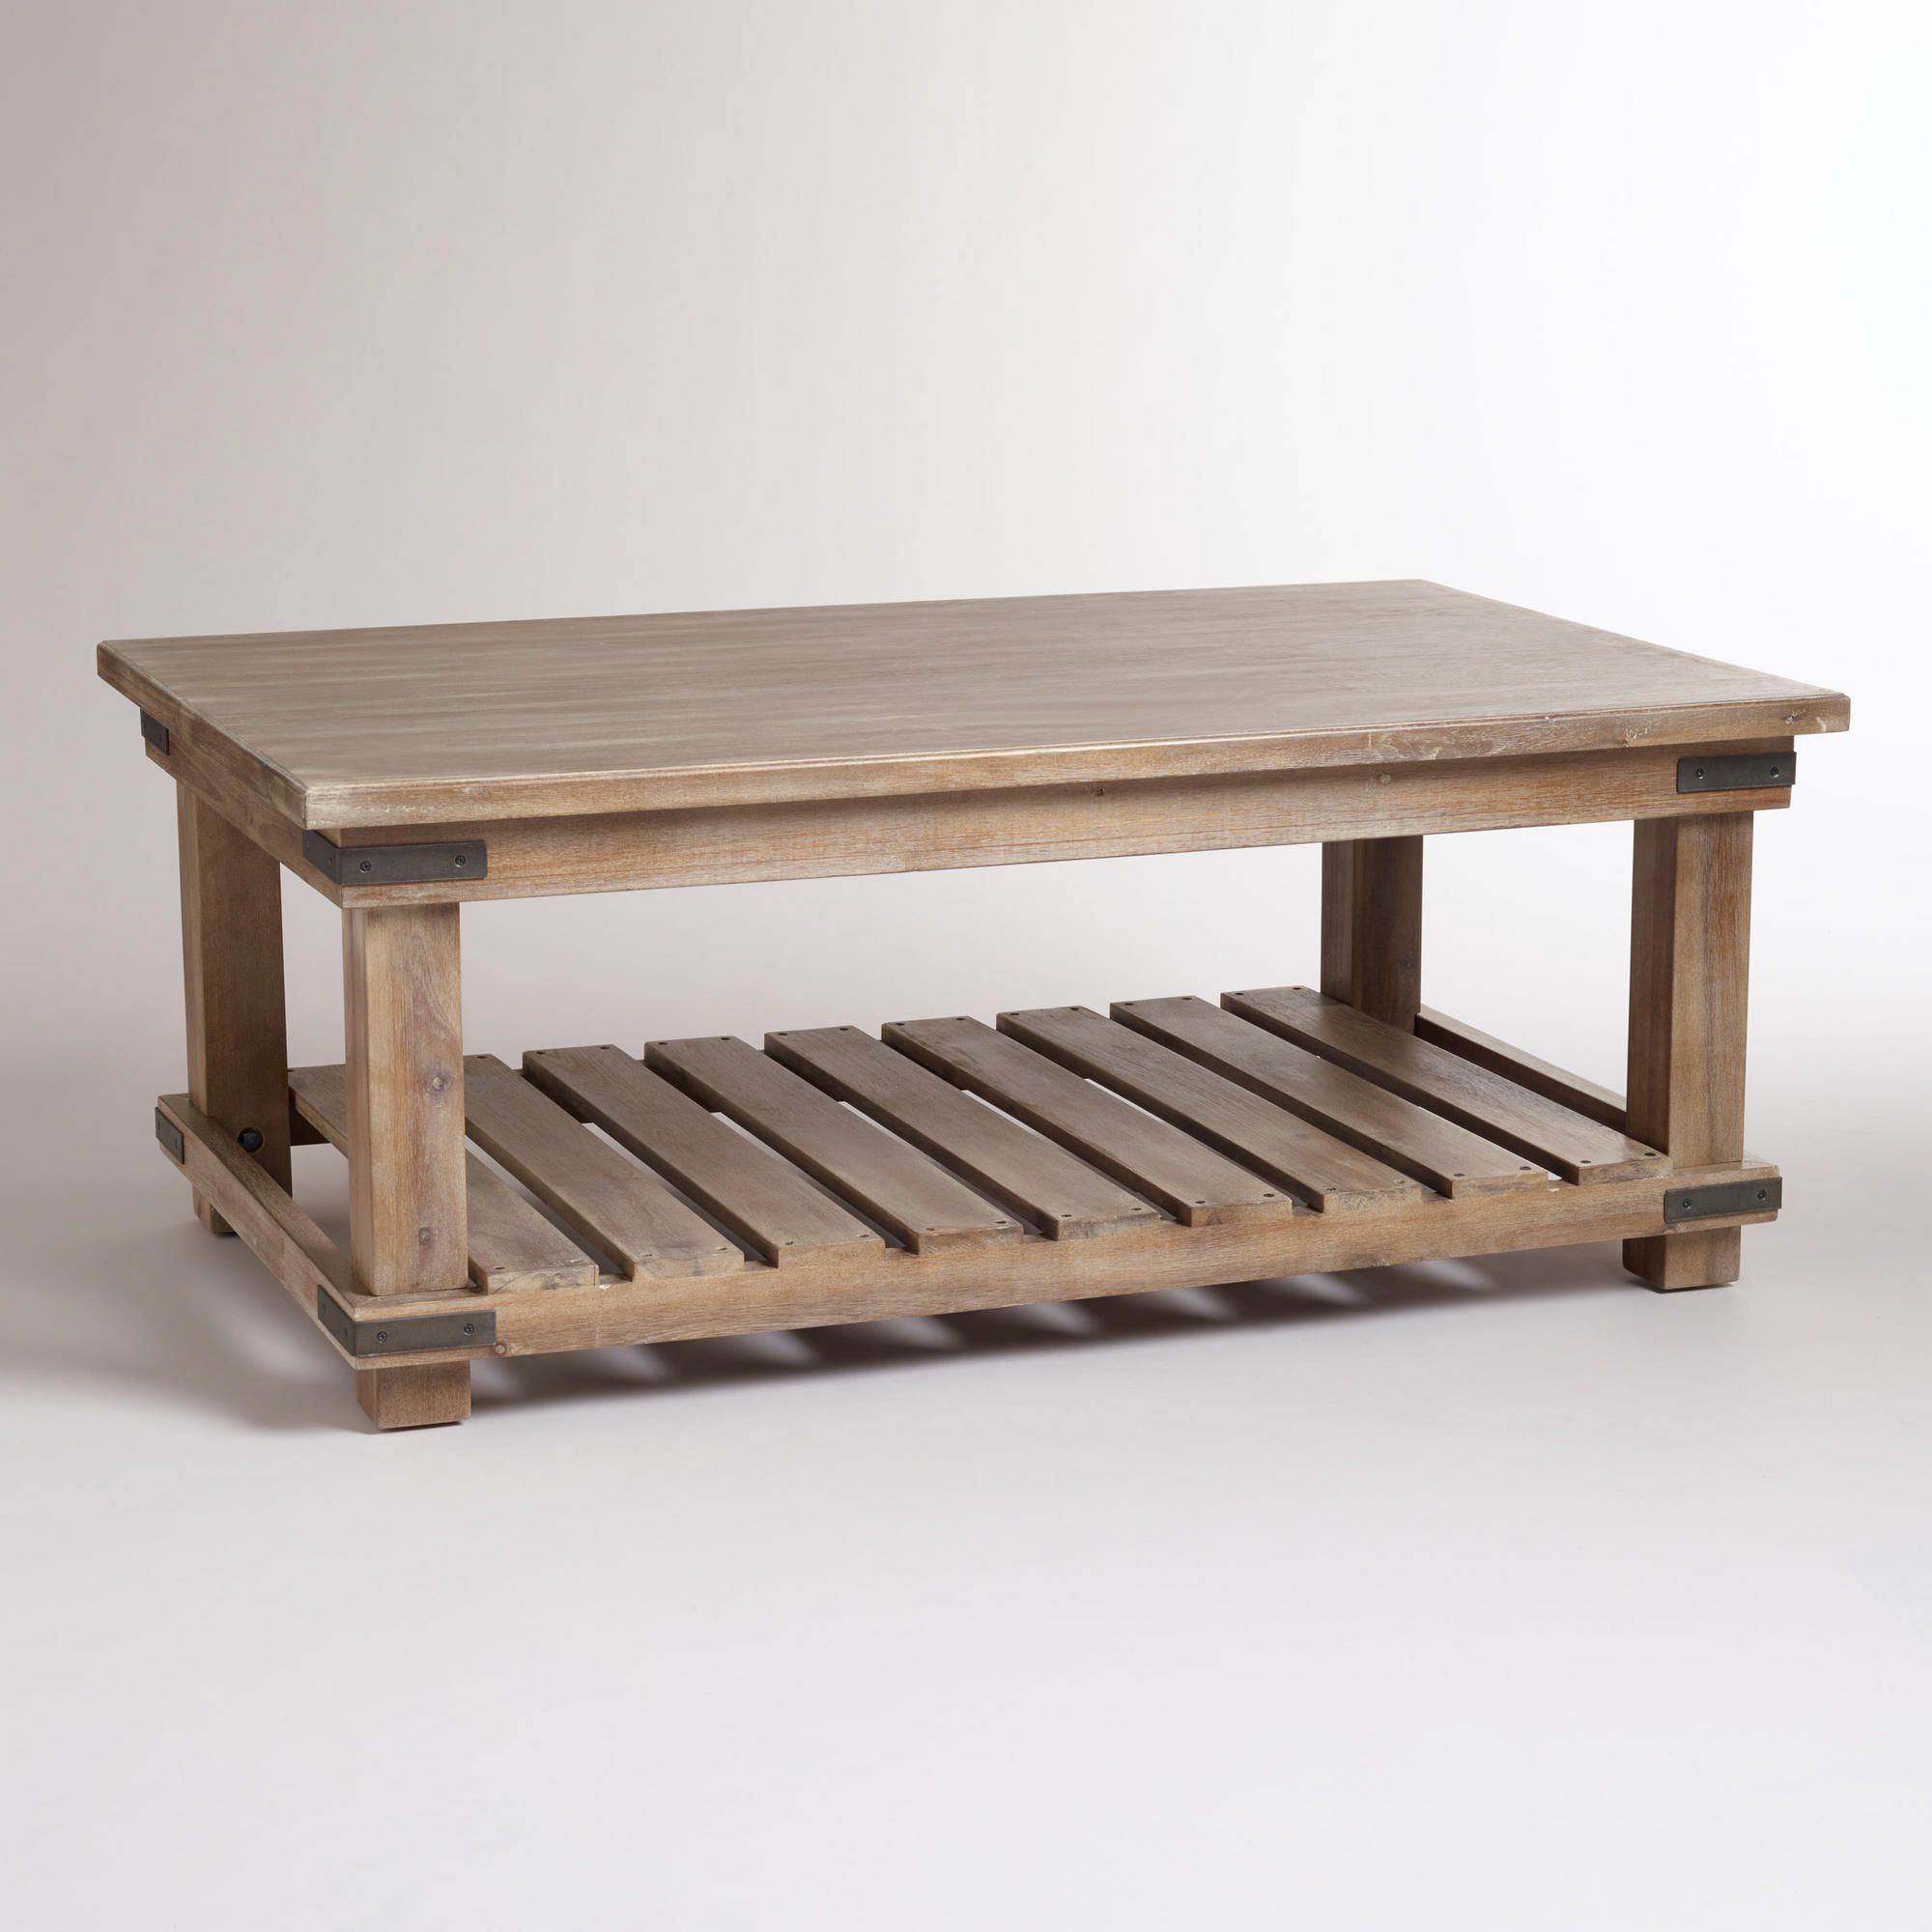 2x4 Tv Stand Coffee Table Rustic Coffee Tables Living Room Coffee Table